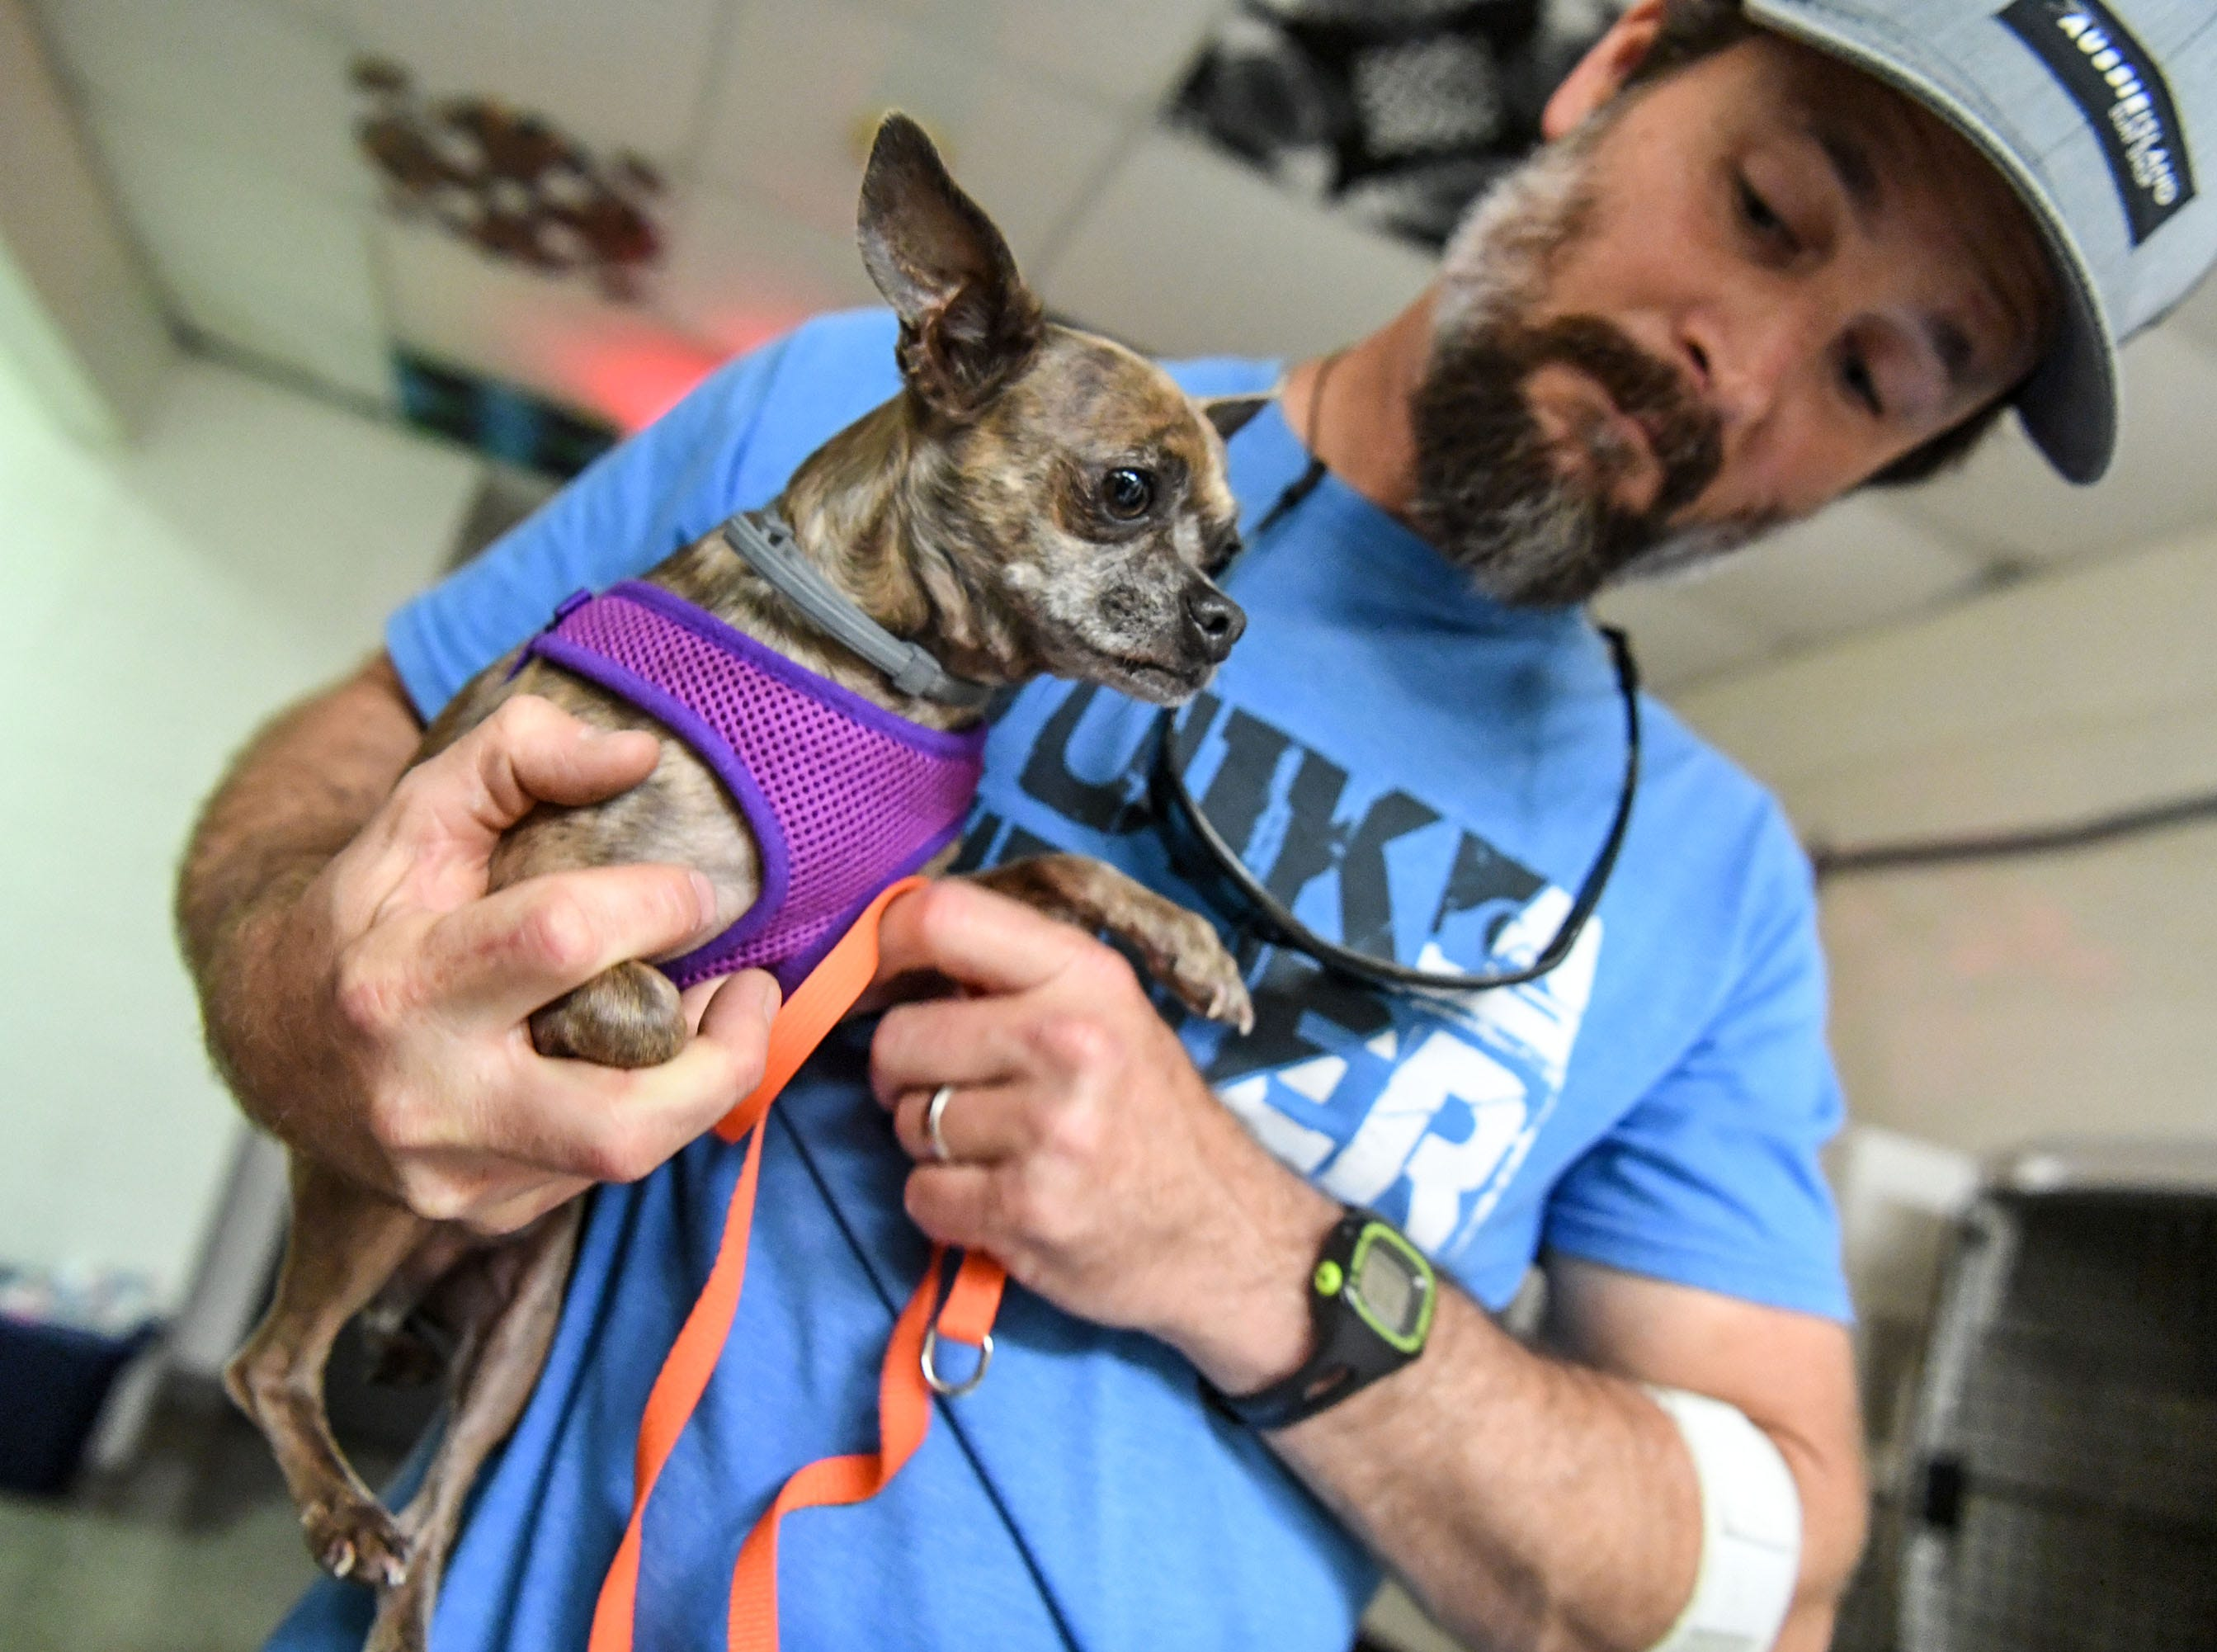 Jameson McDermott, an employee with New Hanover County, holds a dog at the county emergency shelter held at Trask Middle School in Wilmington, North Carolina on Tuesday, September 11, 2018. Hurricane Florence is expected to make landfall in Wilmington Thursday night. (Ken Ruinard / Greenville News / Gannett USA Today Network / 2018 )